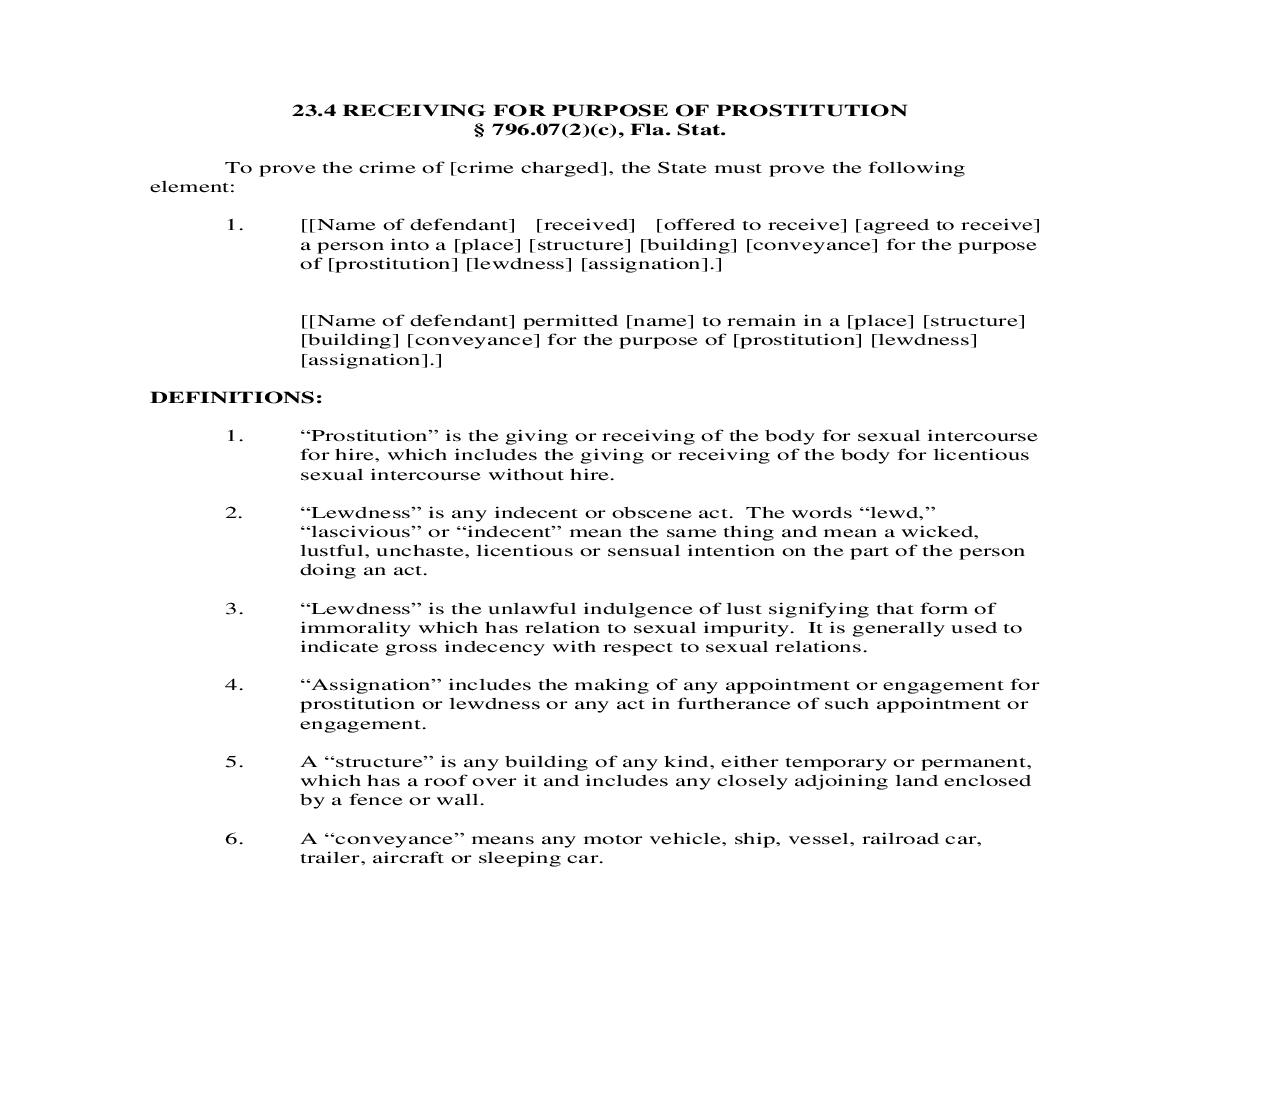 23.4. Receiving For Purpose Of Prostitution   Pdf Doc Docx   Florida_JI